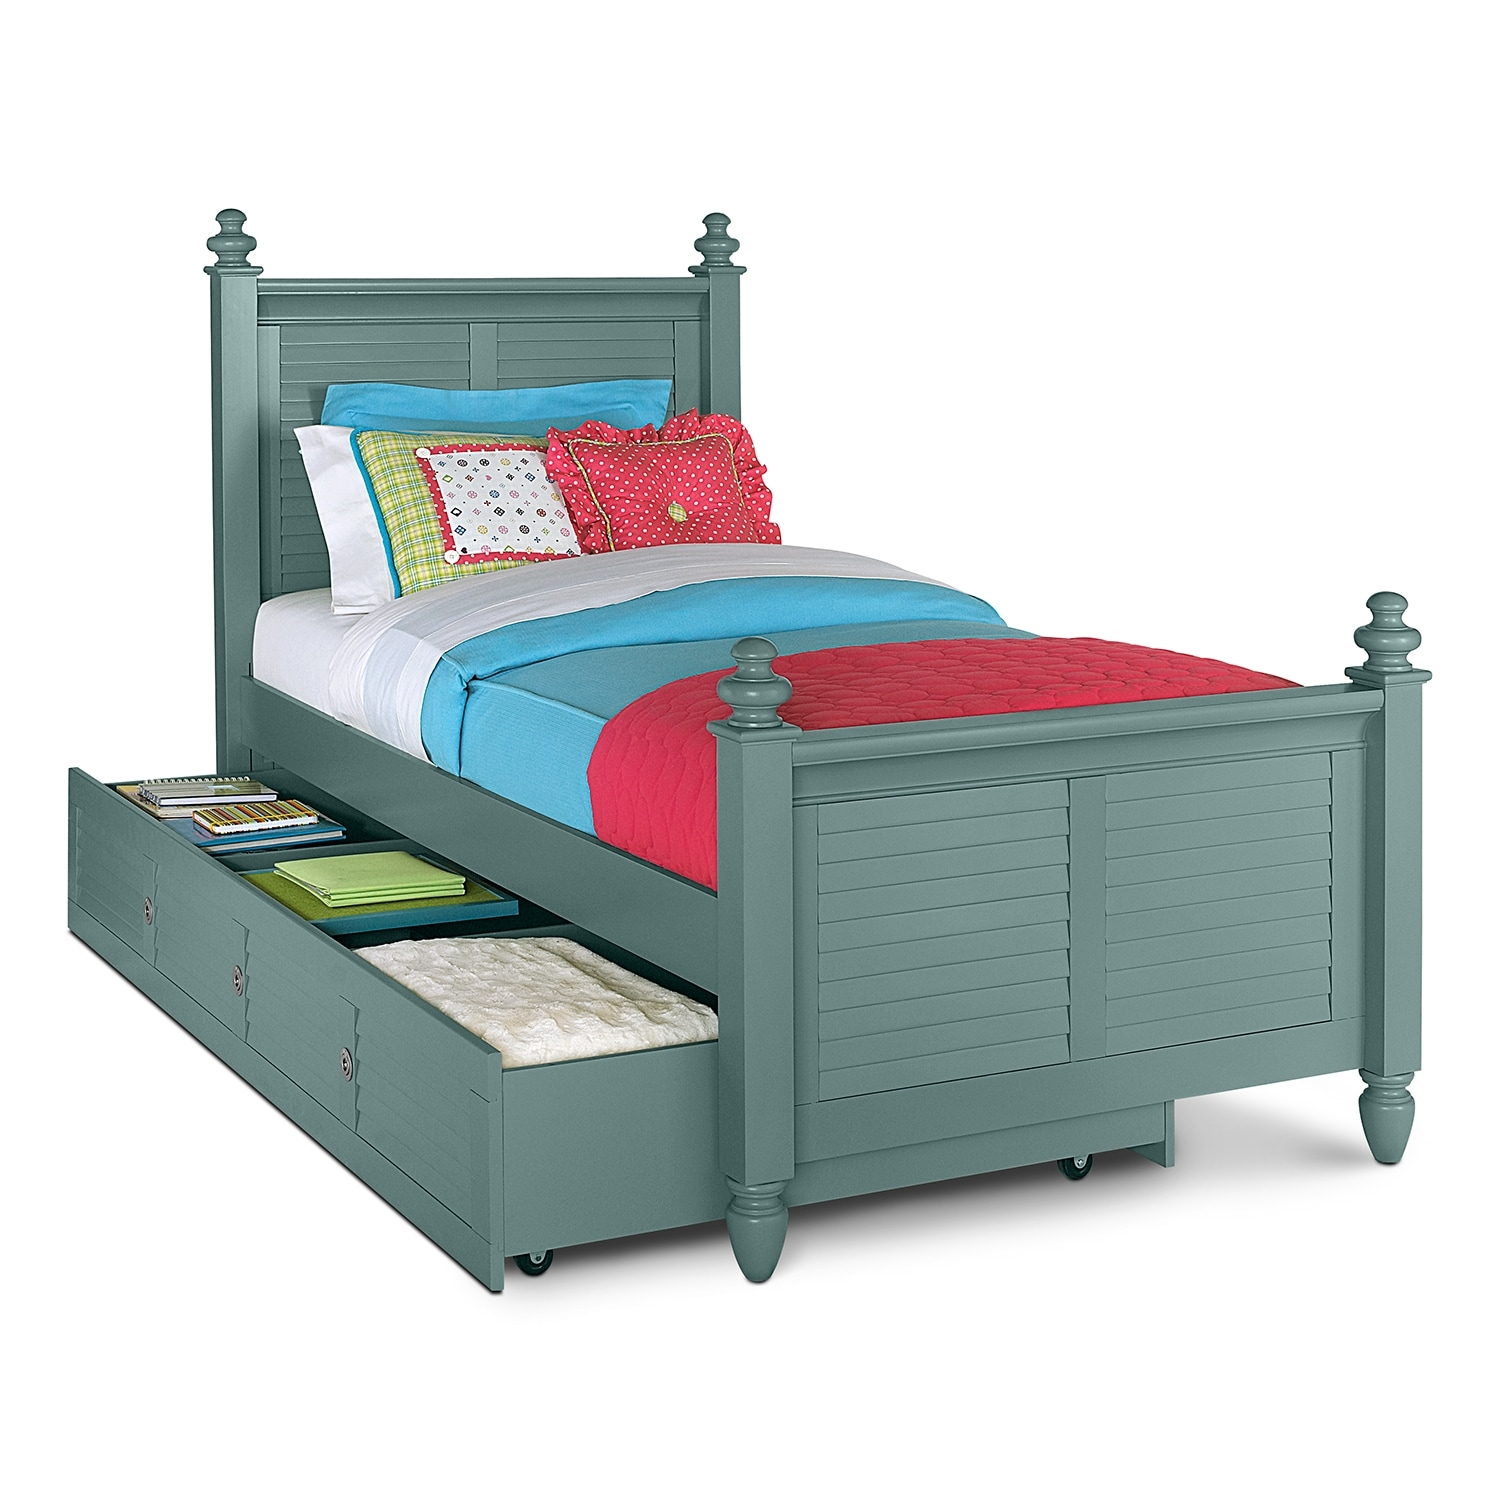 Shop Twin Beds American Signature Furniture